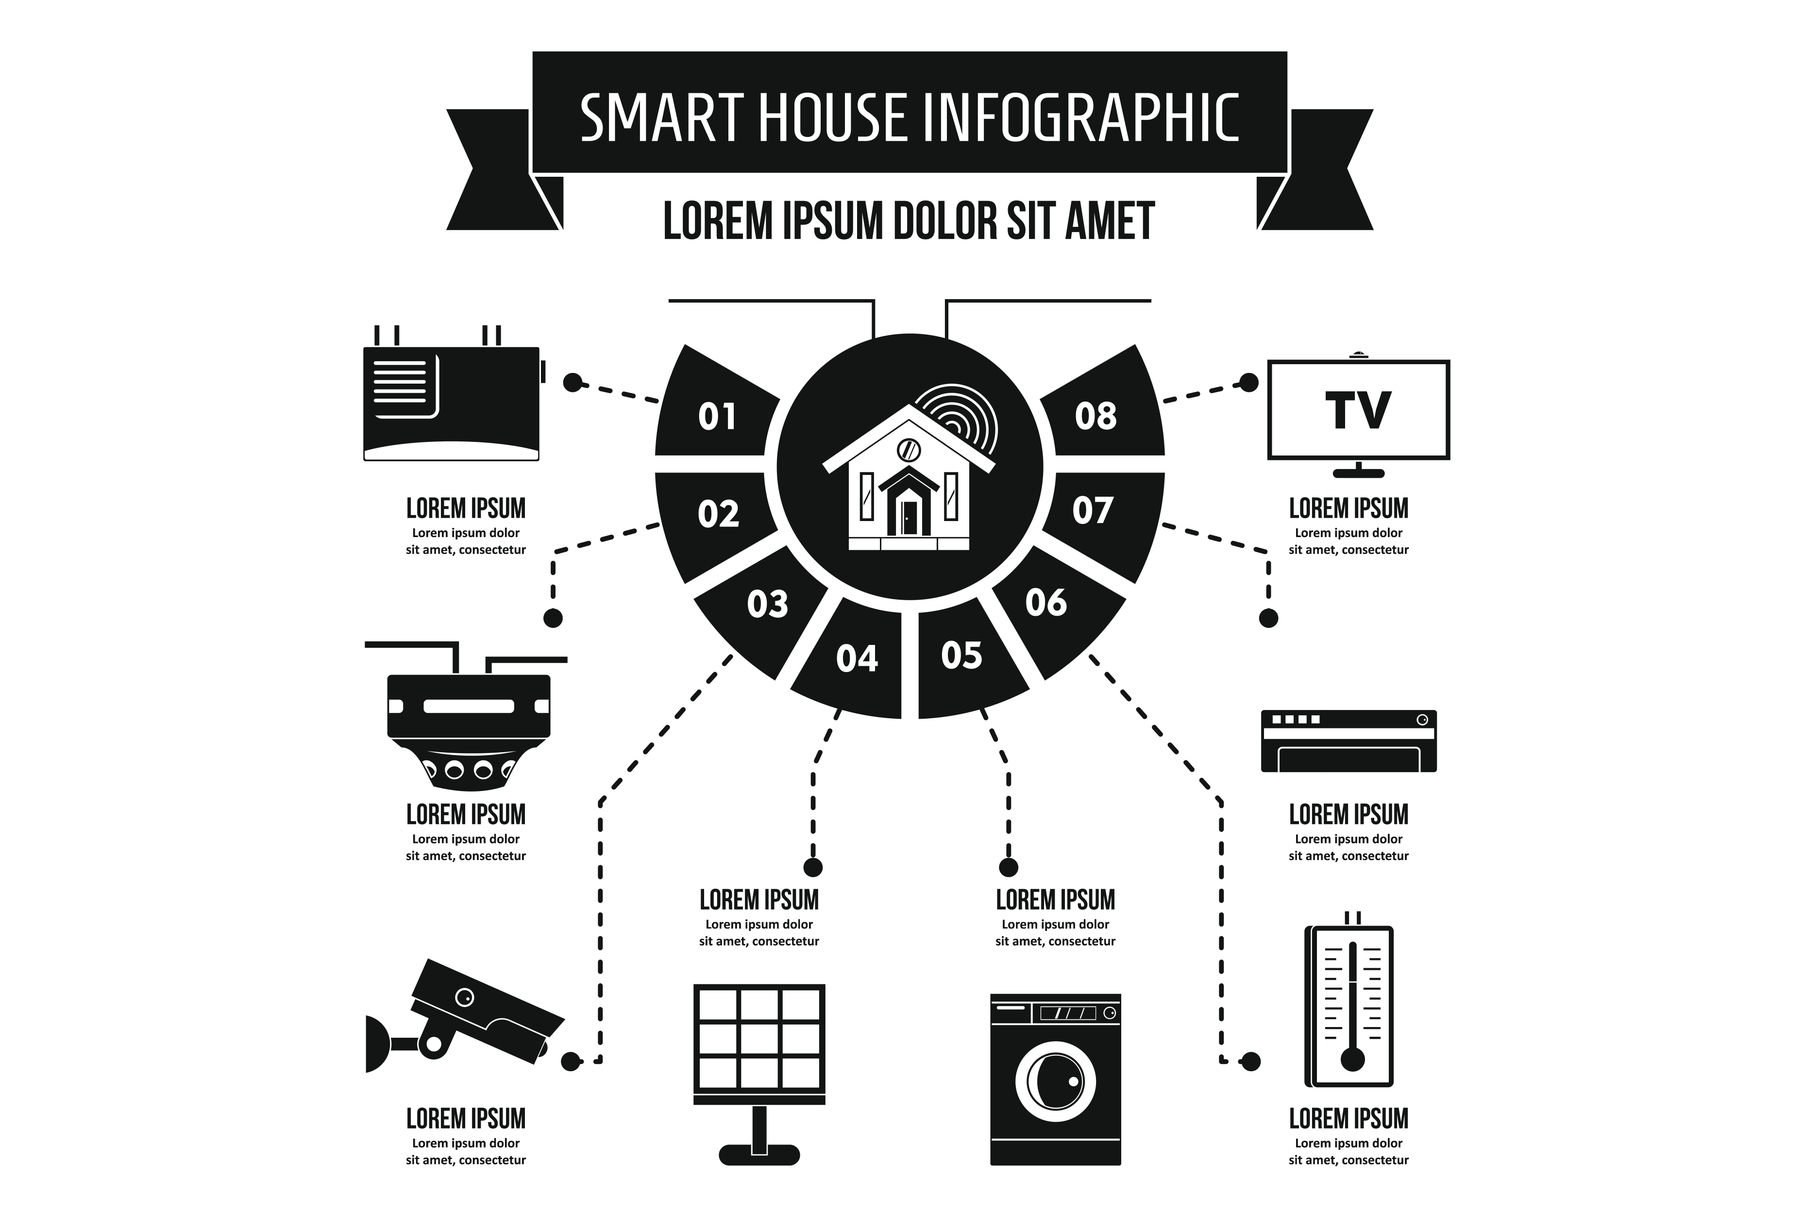 Smart house infographic concept, simple style example image 1